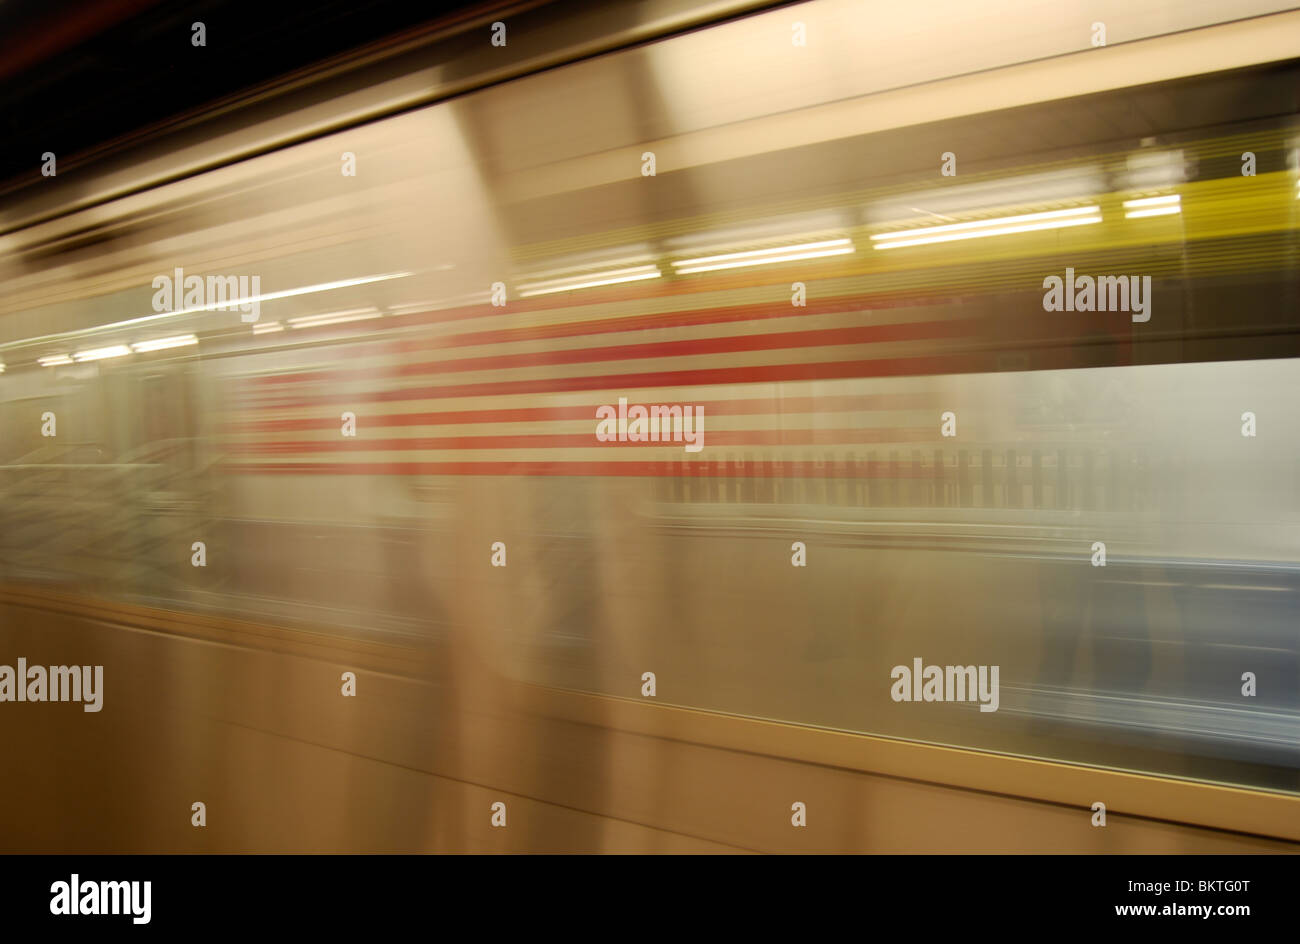 A New York MTA 2 Train pulls up at Wall Street SUbway Station, New York City, USA. - Stock Image